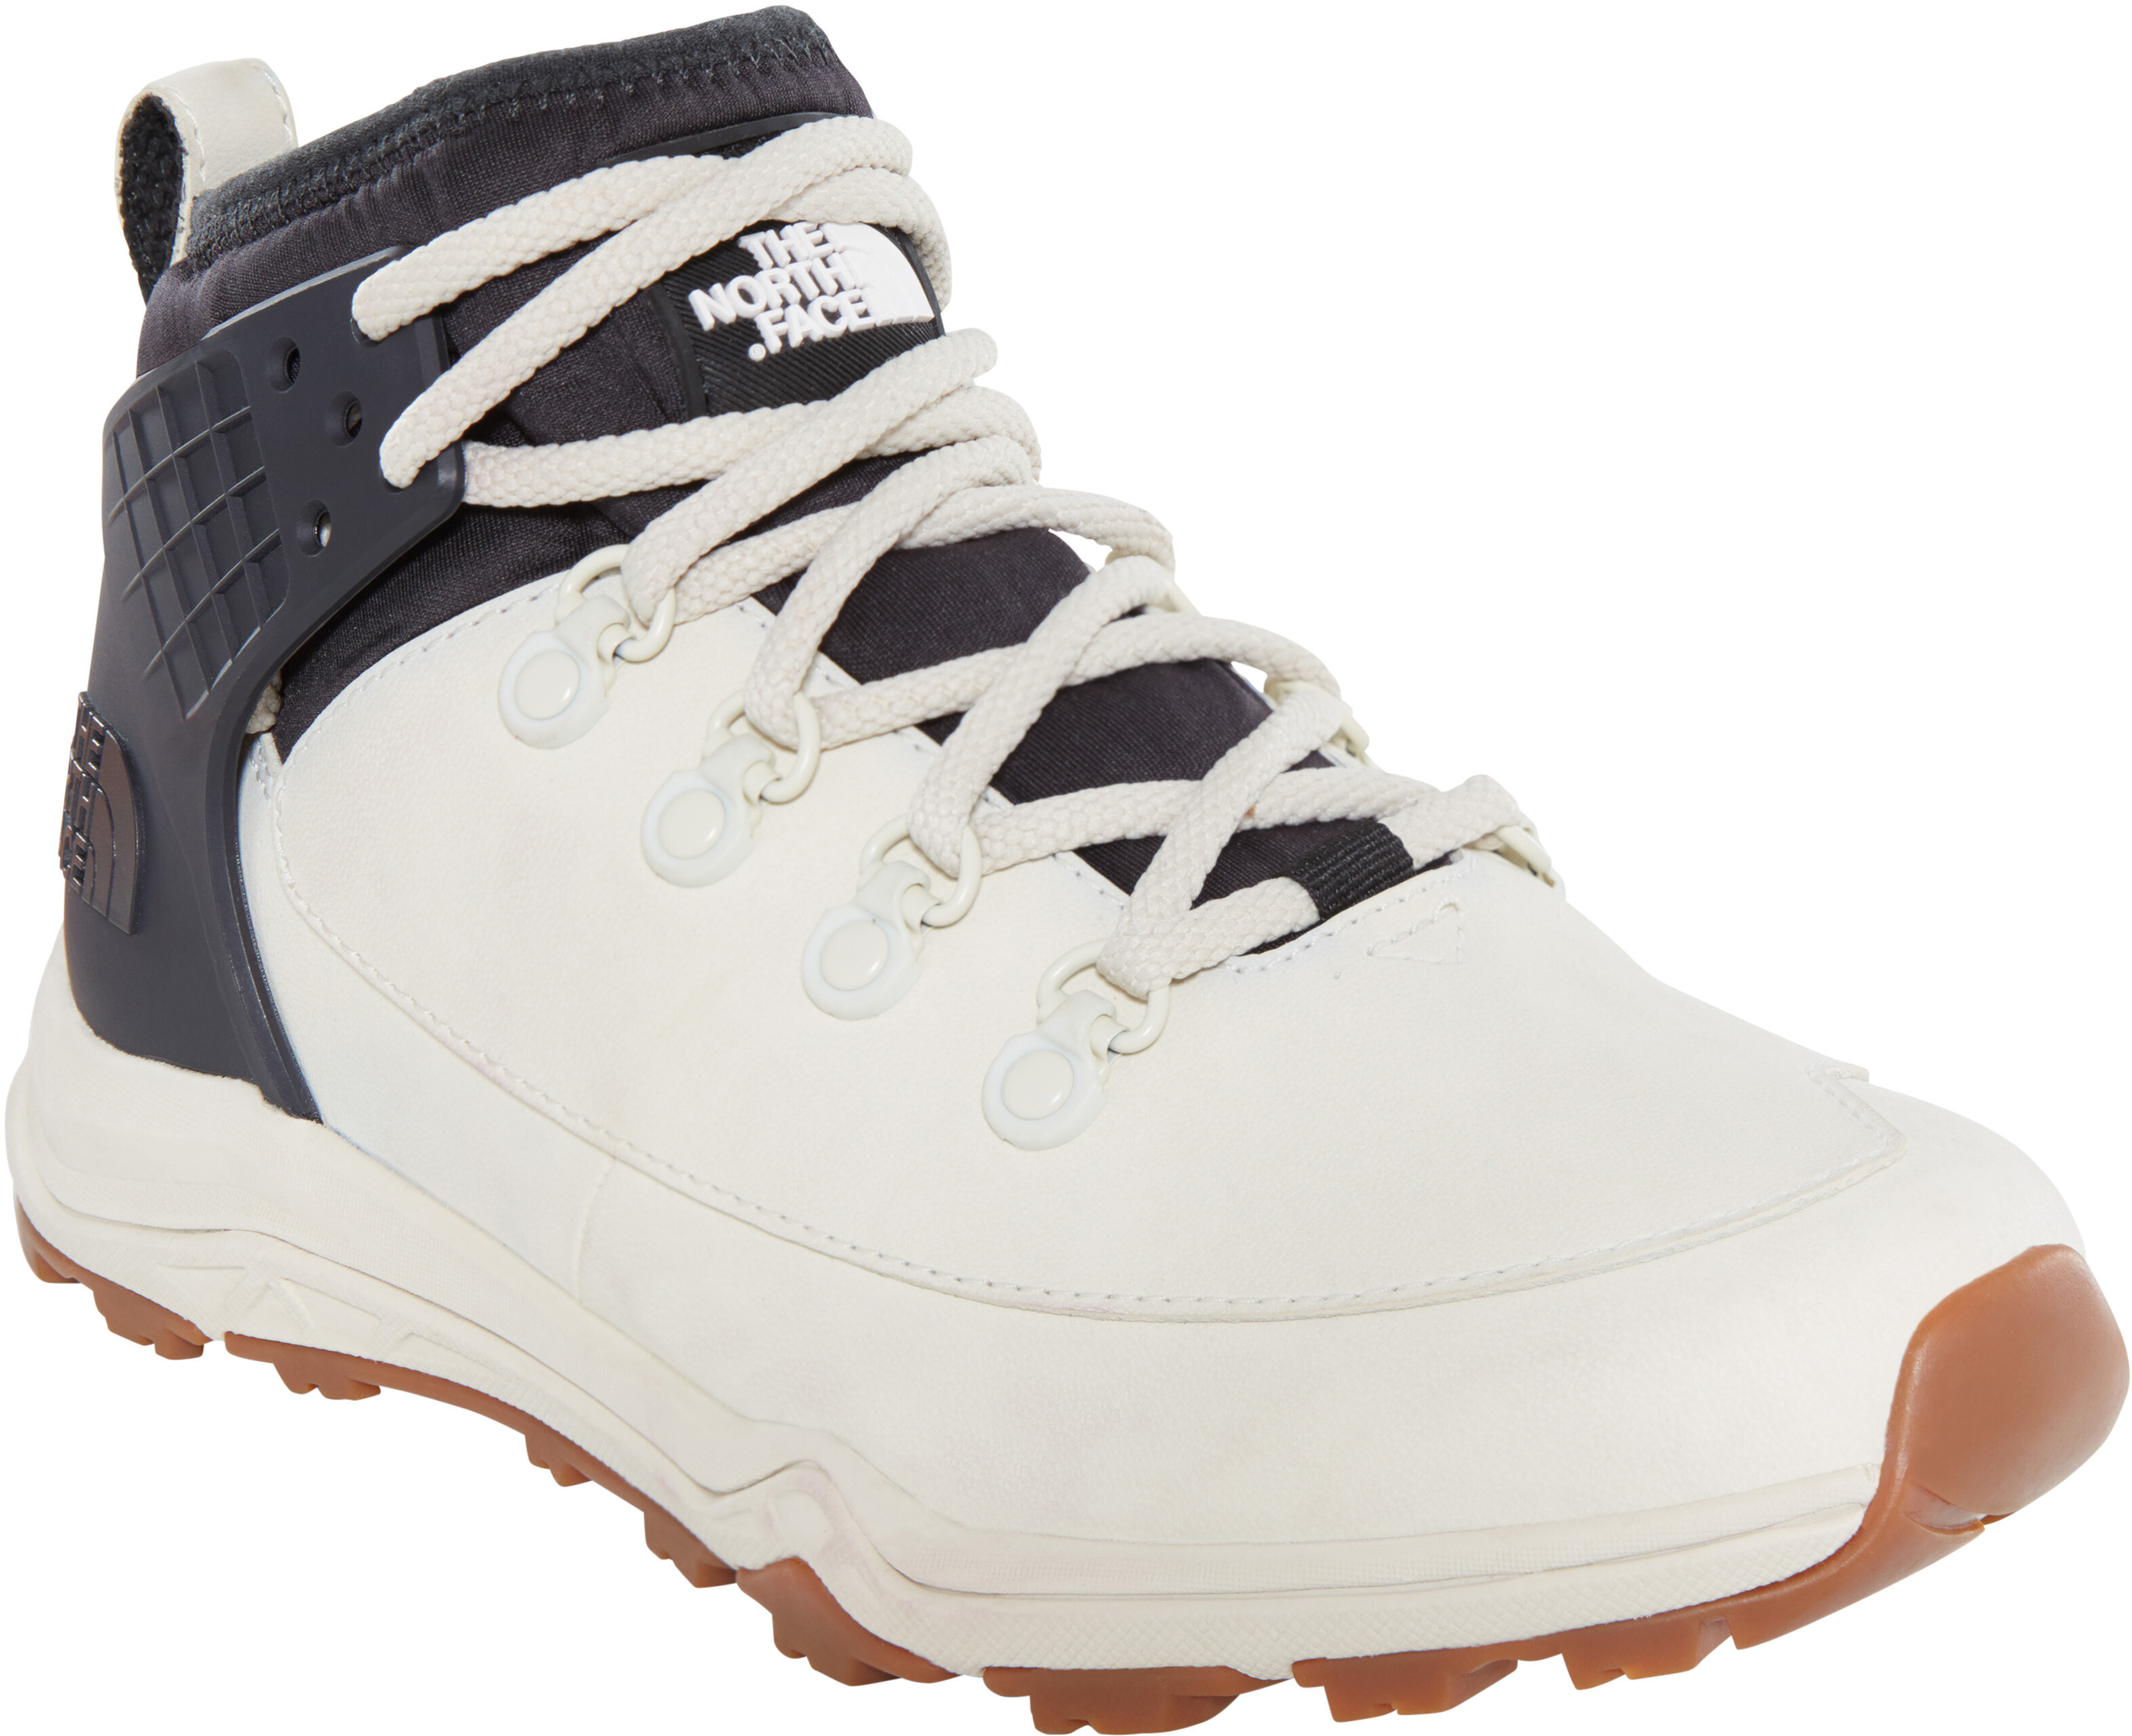 7e89f4a70c6 The North Face Dellan Schoenen wit/zwart l Online outdoor shop Campz.nl